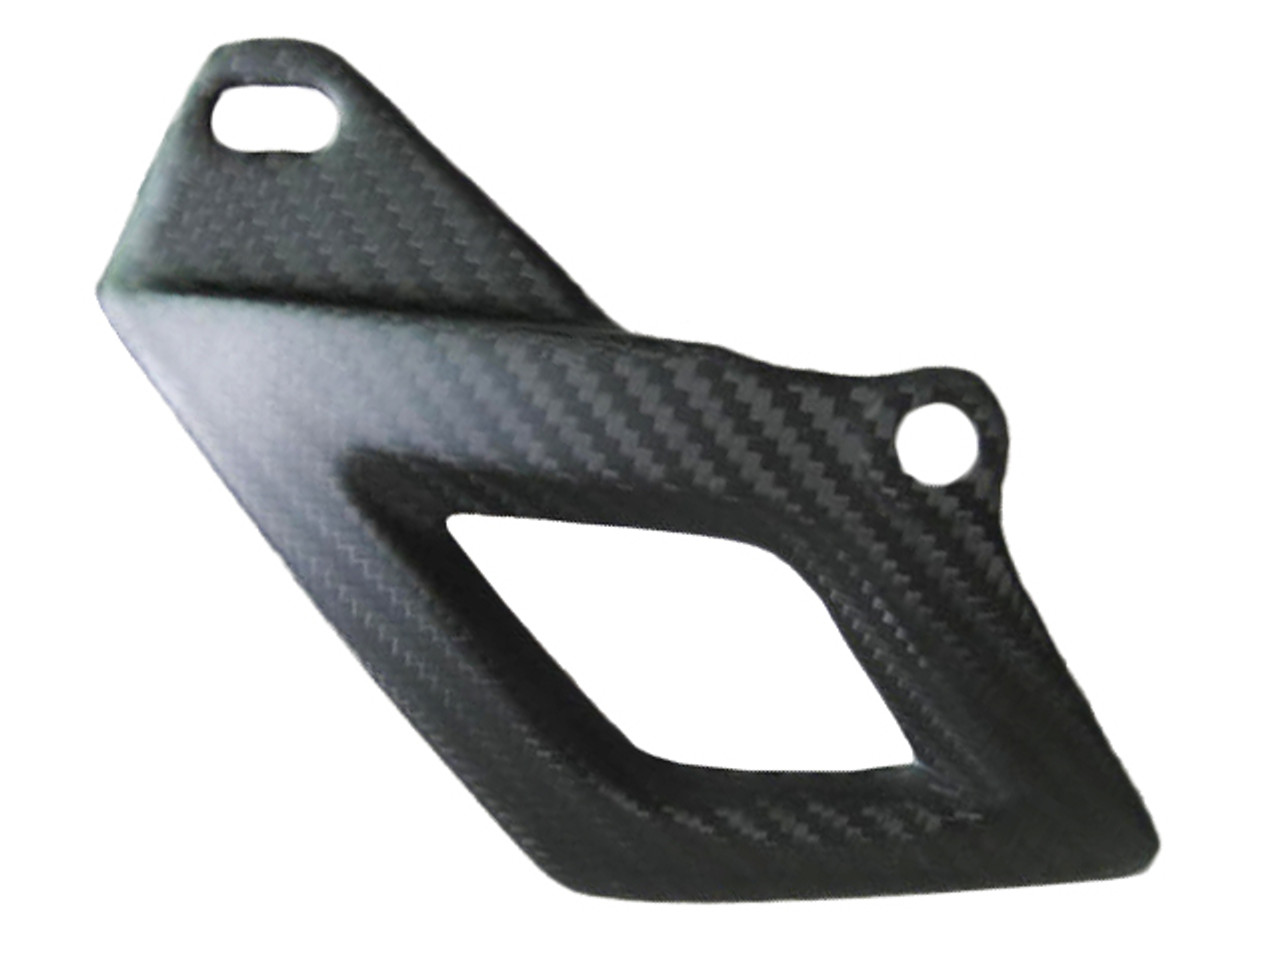 Matte Twill Weave Carbon Fiber  Lower Chain Guard for Aprilia RSV4 2009+, Tuono V4 2011+